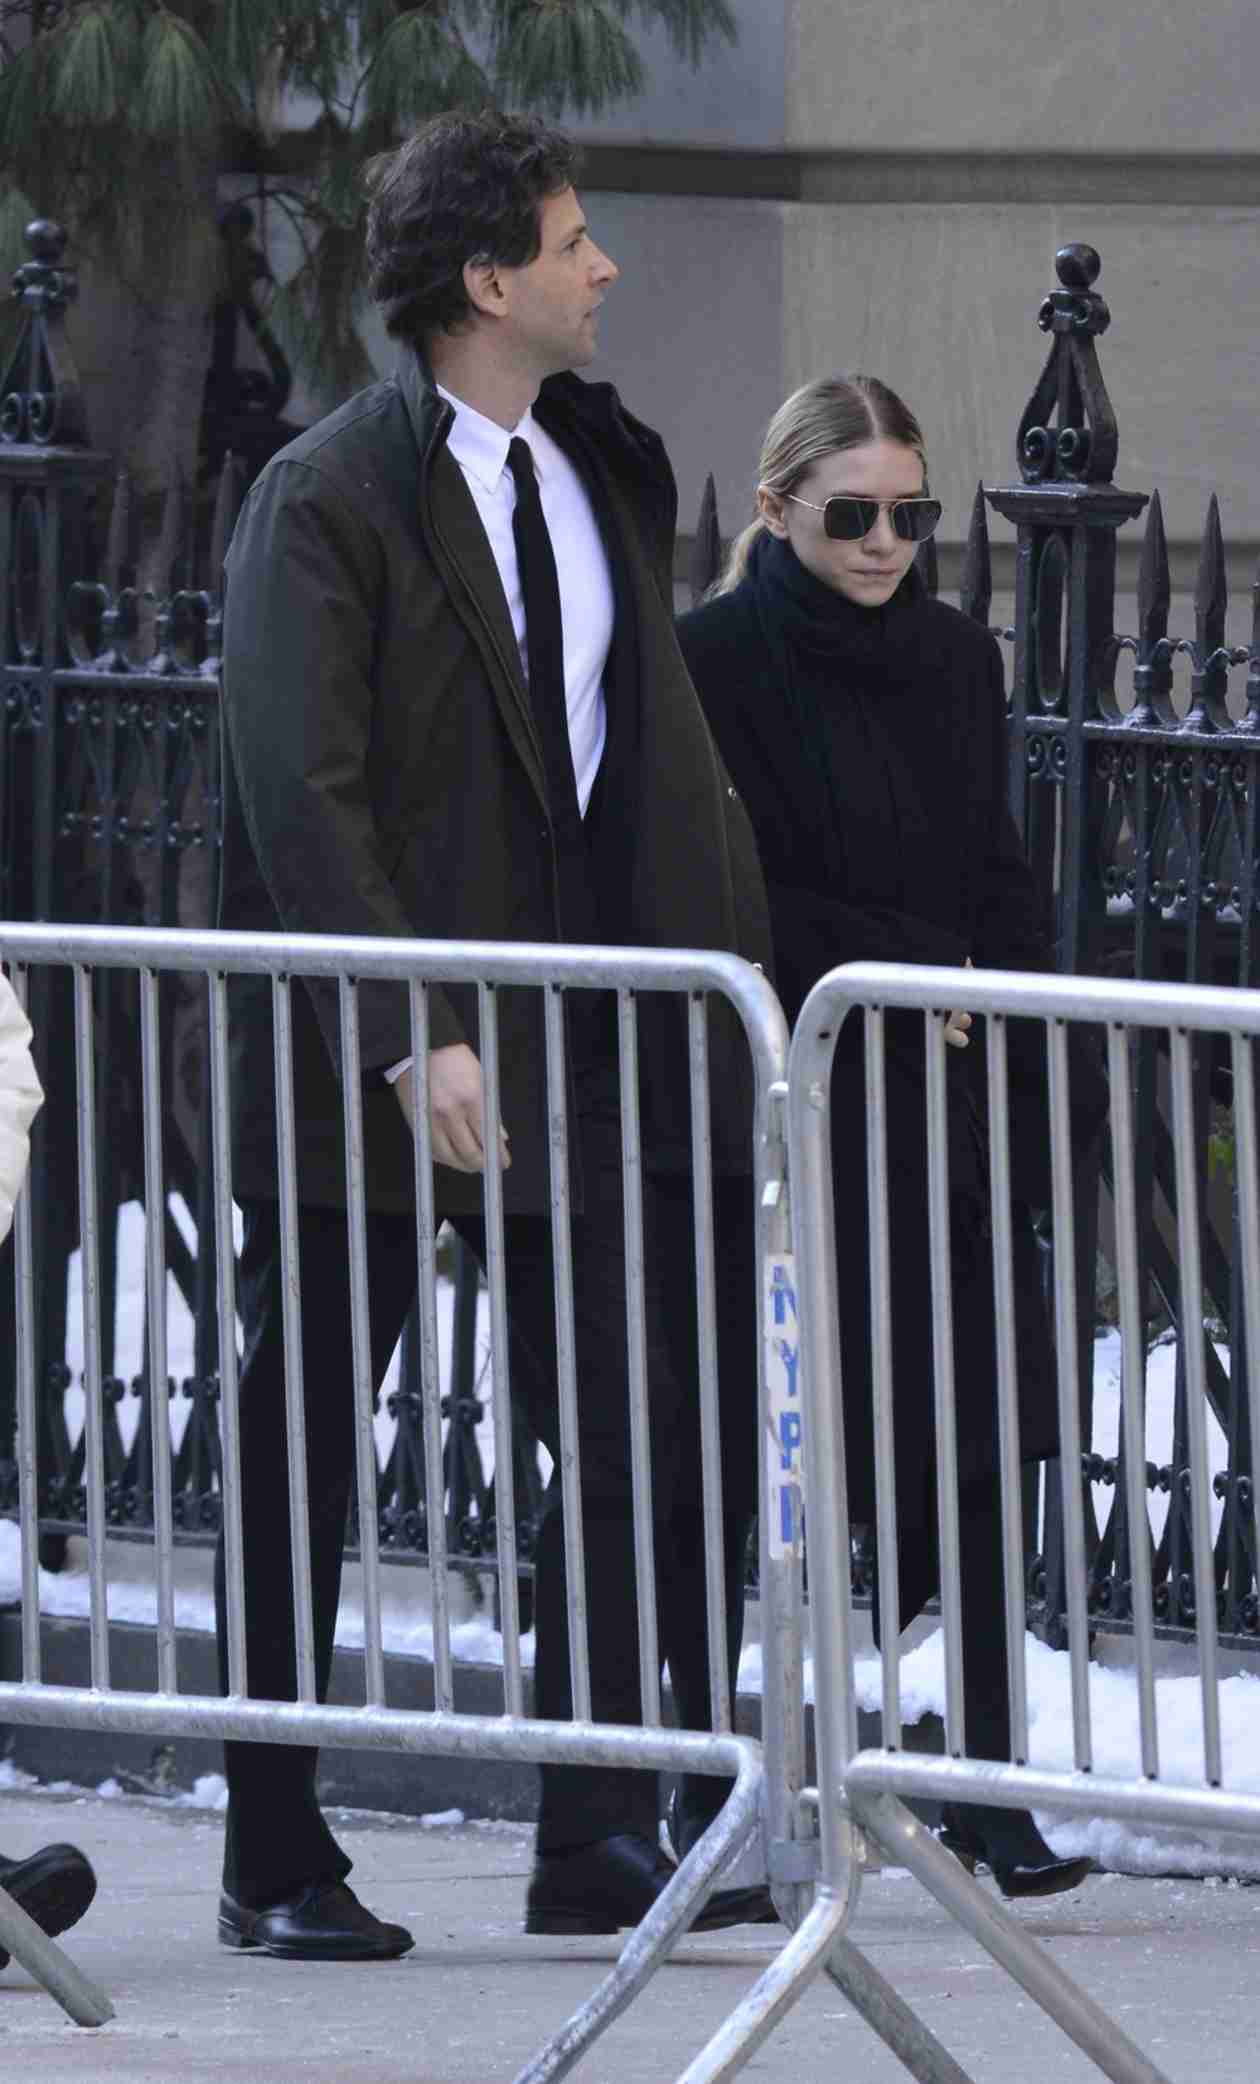 Ashley Olsen Dating Bennett Miller, 47-Year-Old Director of Moneyball — Report